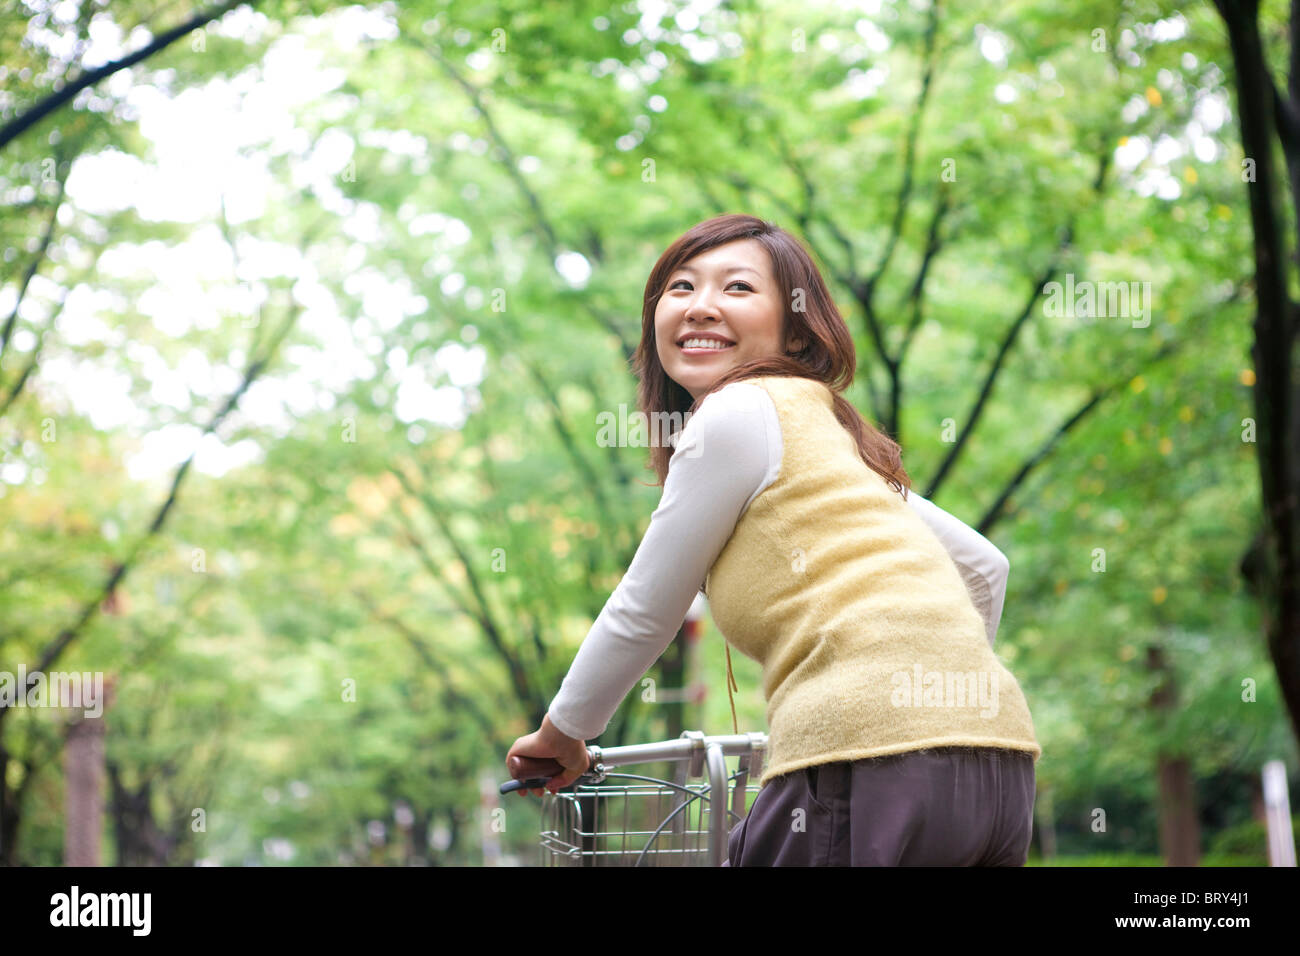 Young woman riding bicycle, smiling Banque D'Images